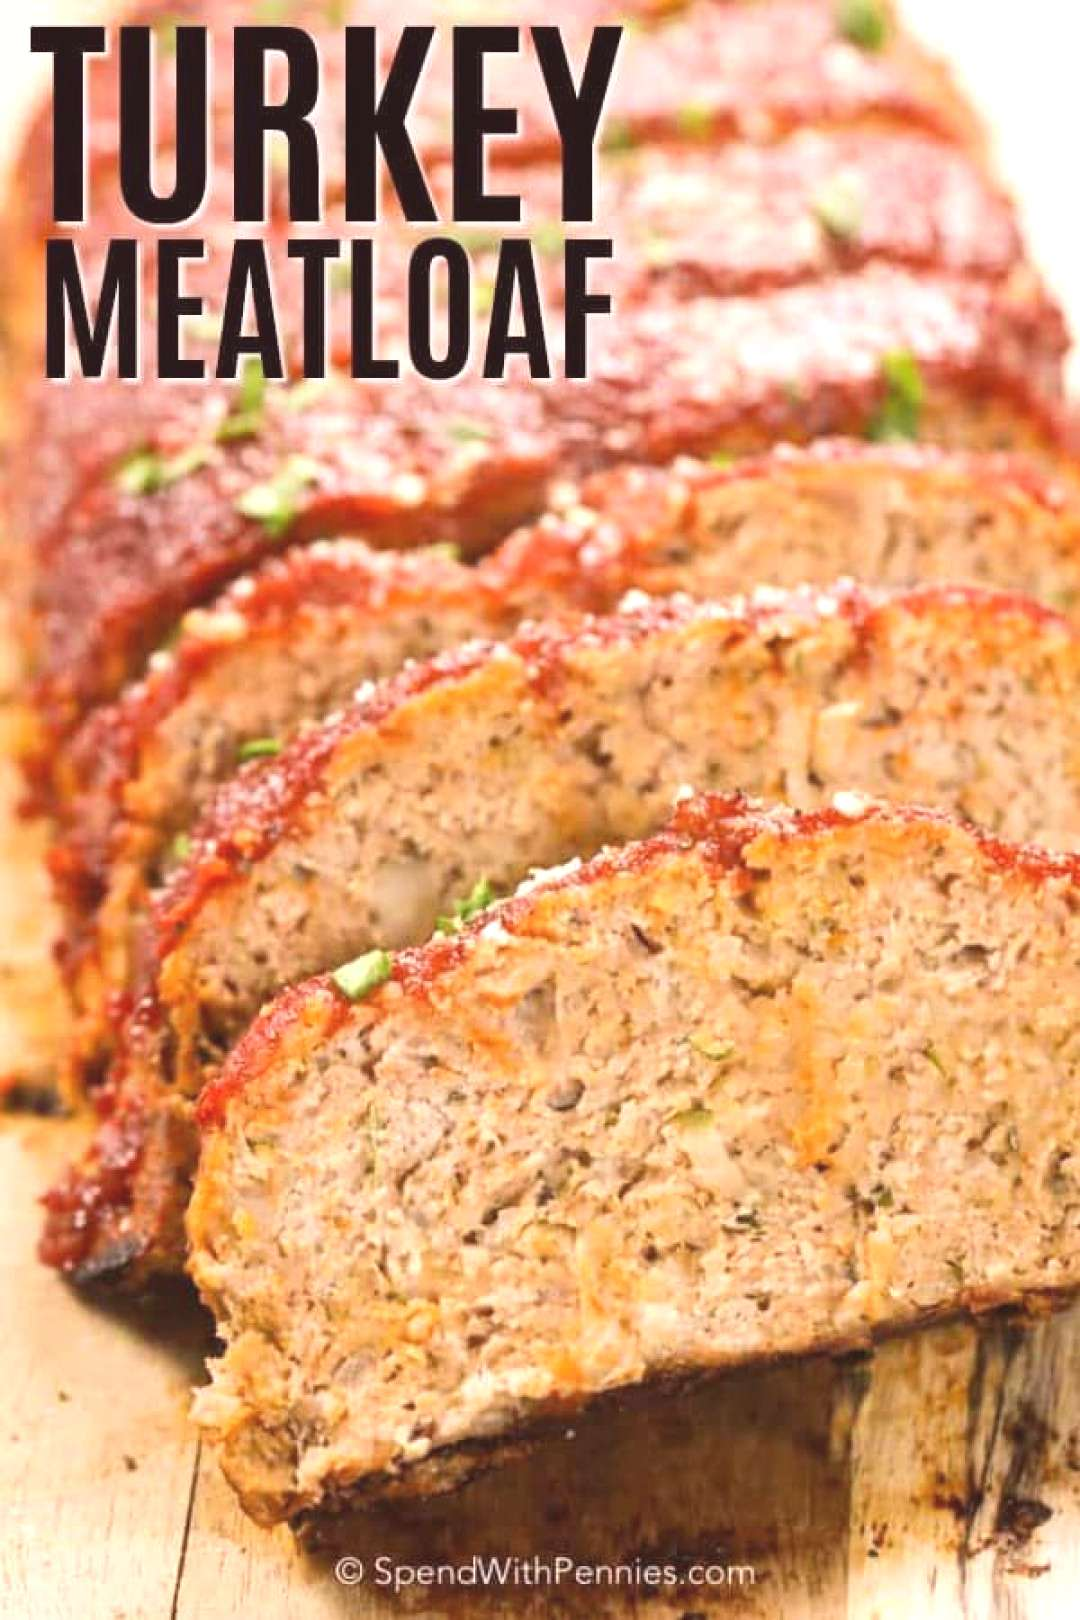 Easy Turkey Meatloaf {Moist} - Spend with Pennies -  This Turkey meatloaf recipe is moist and tende